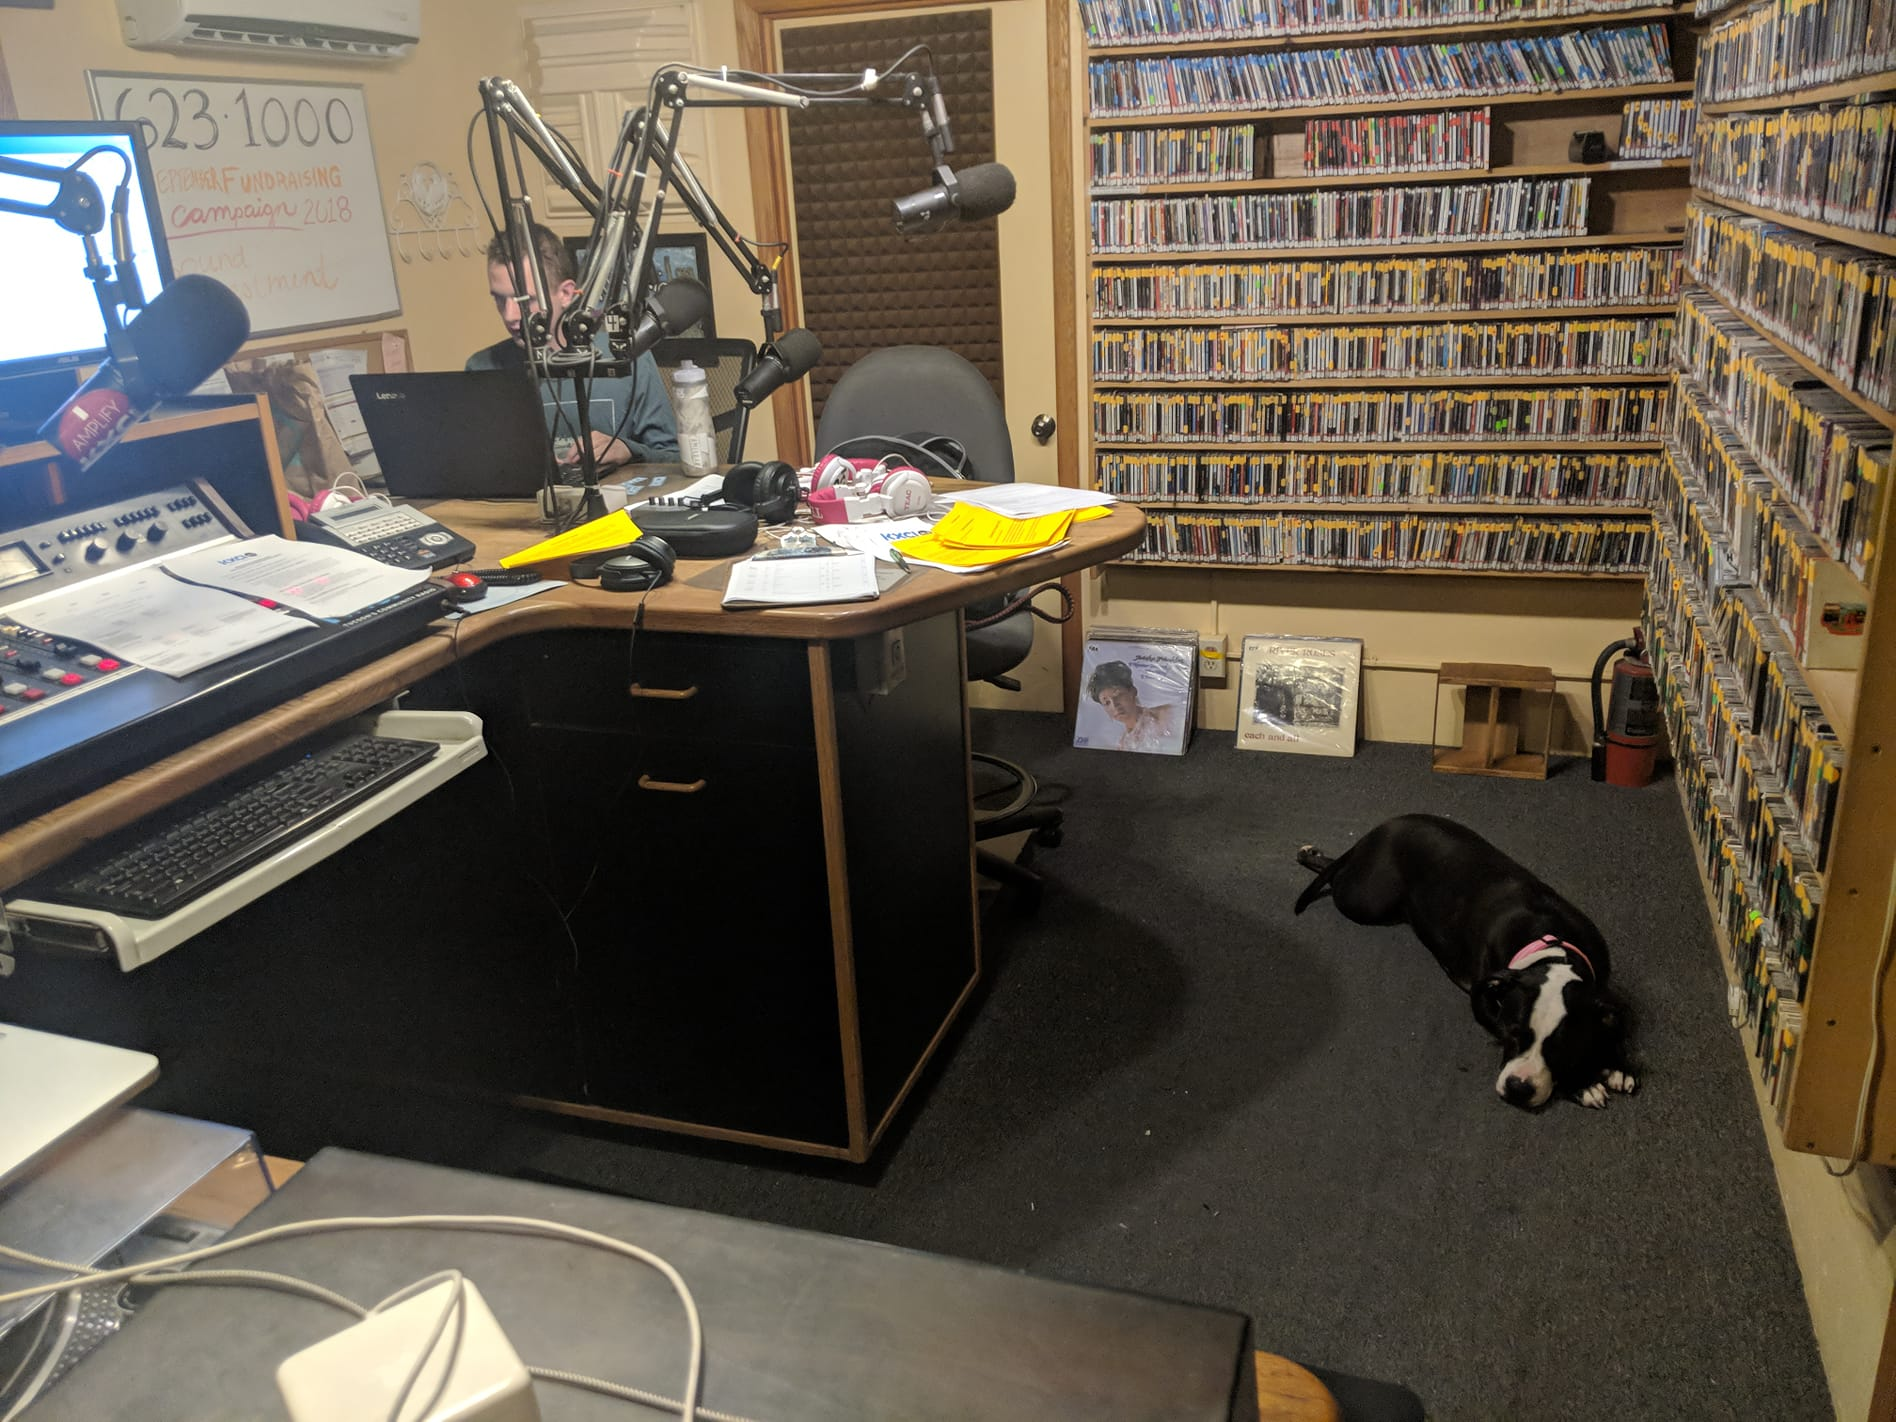 91.3 KXCI Station (& my pitbull Millie)